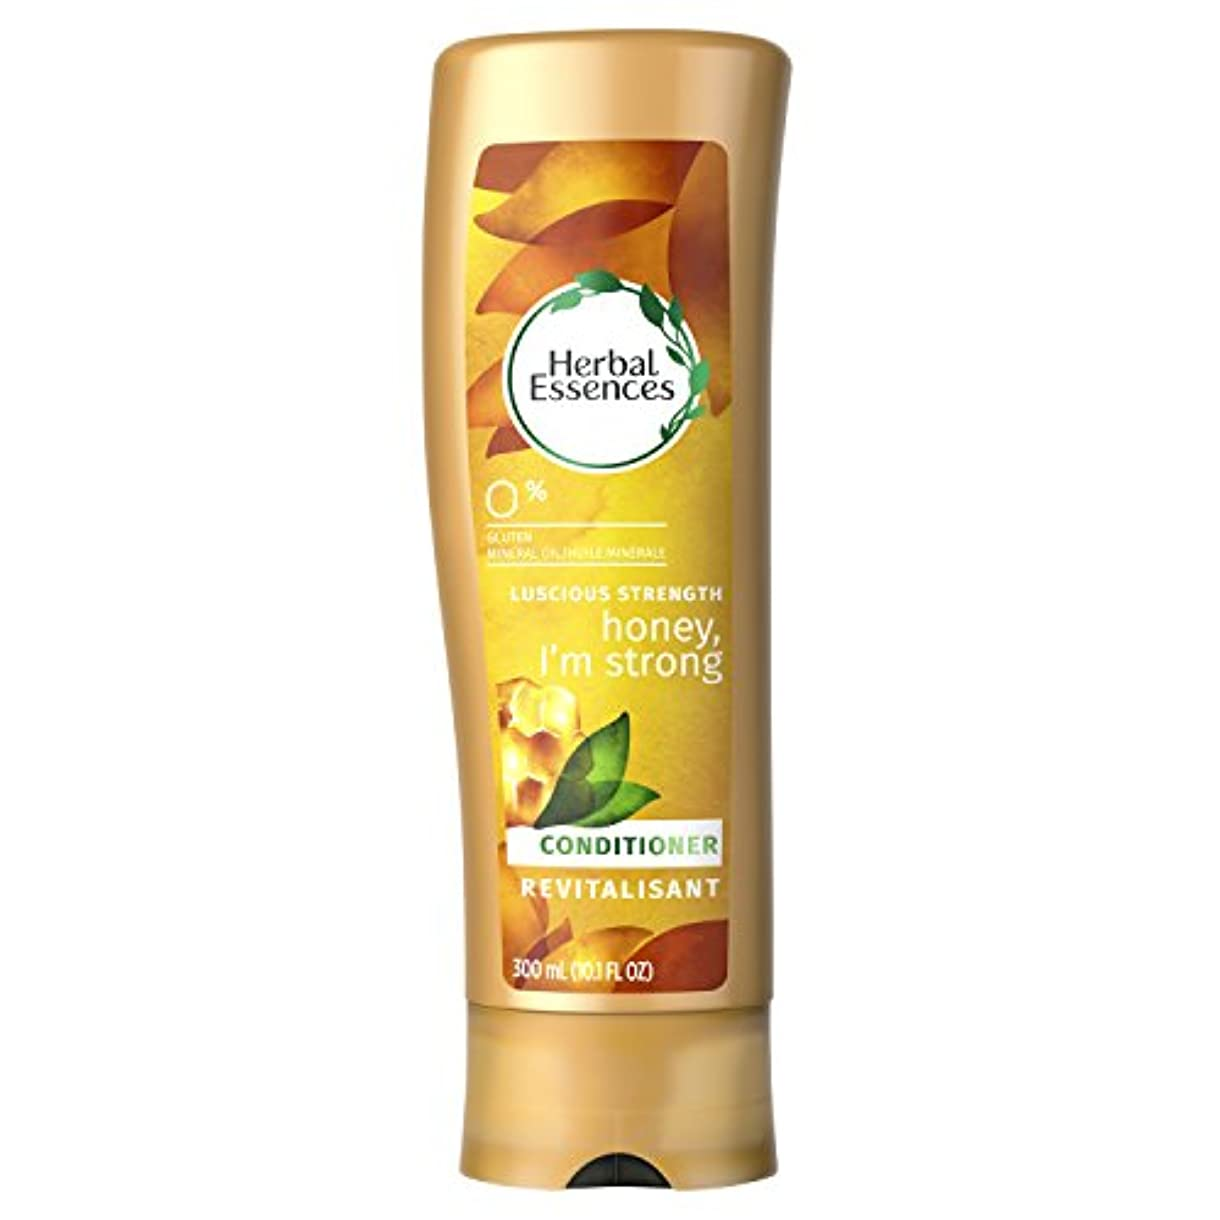 信頼好奇心盛あいさつHerbal Essences Honey I'm Strong Strengthening Conditioner, 10.1 Fluid Ounce by Procter & Gamble - HABA Hub [並行輸入品]